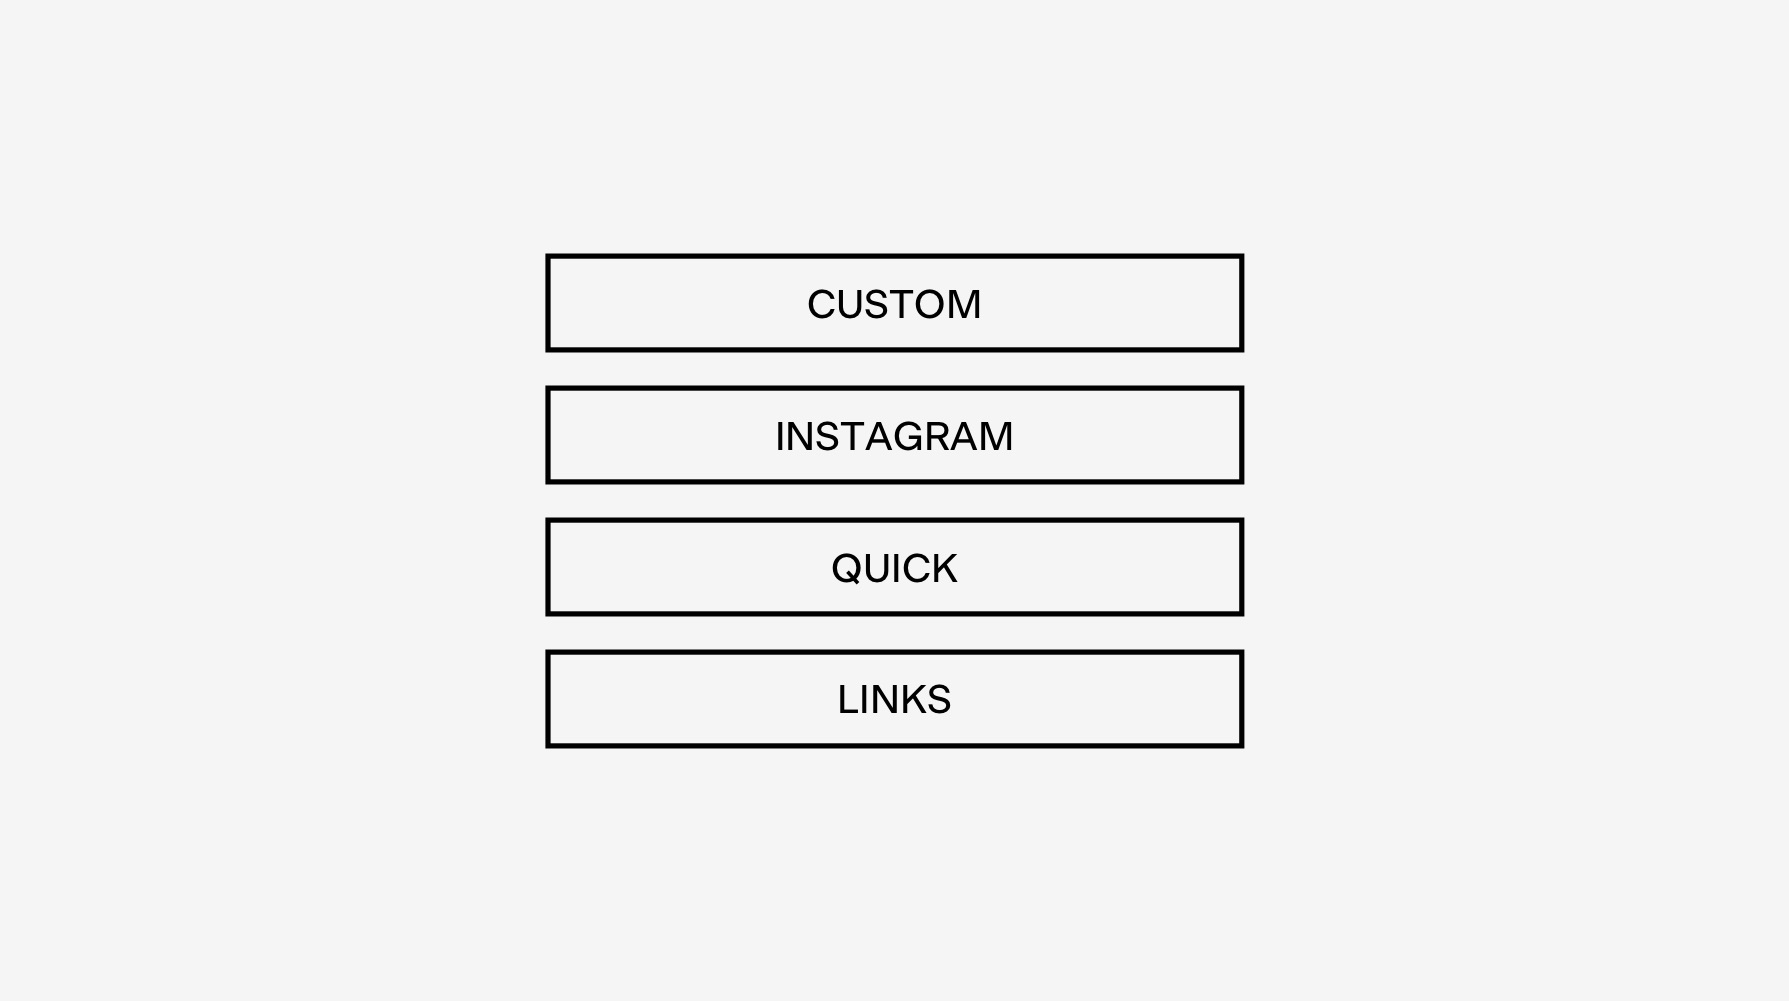 Build Your Own Instagram Quick Links Page